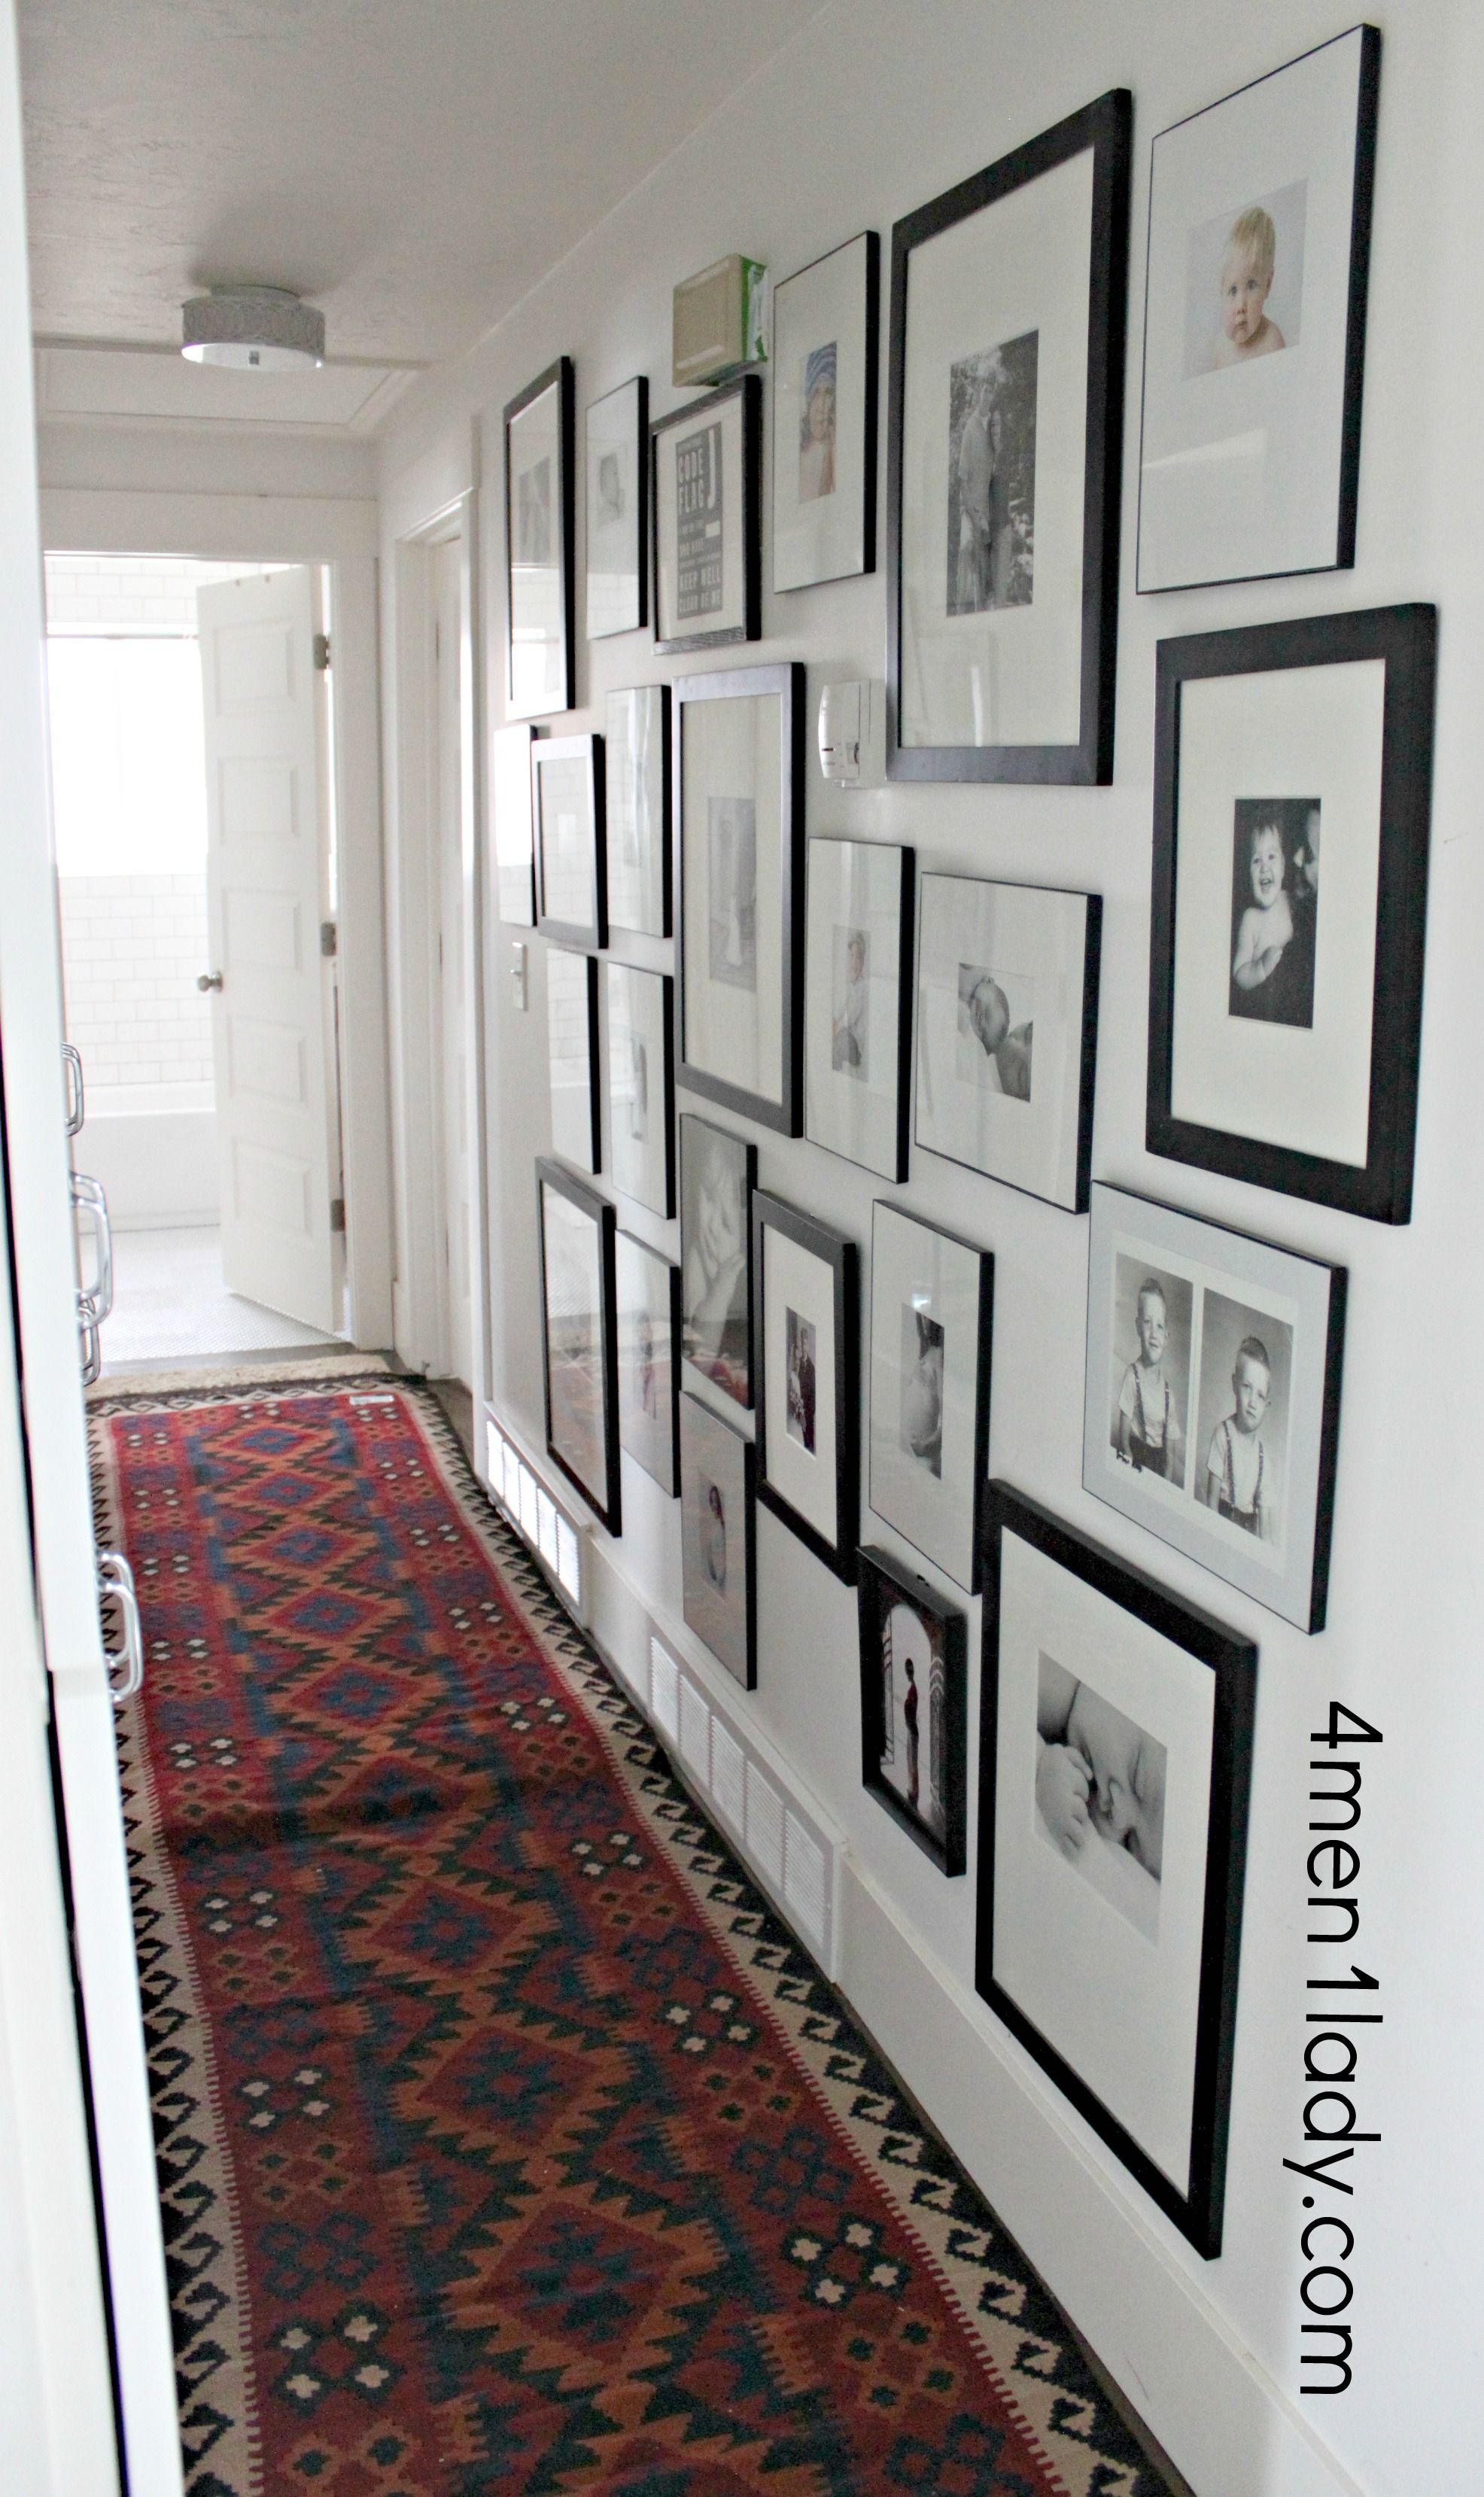 Hallway leading to the ladies rooms - Gallery Wall From 4 Men A Lady Refers To Penny Sale At Aaron Brothers